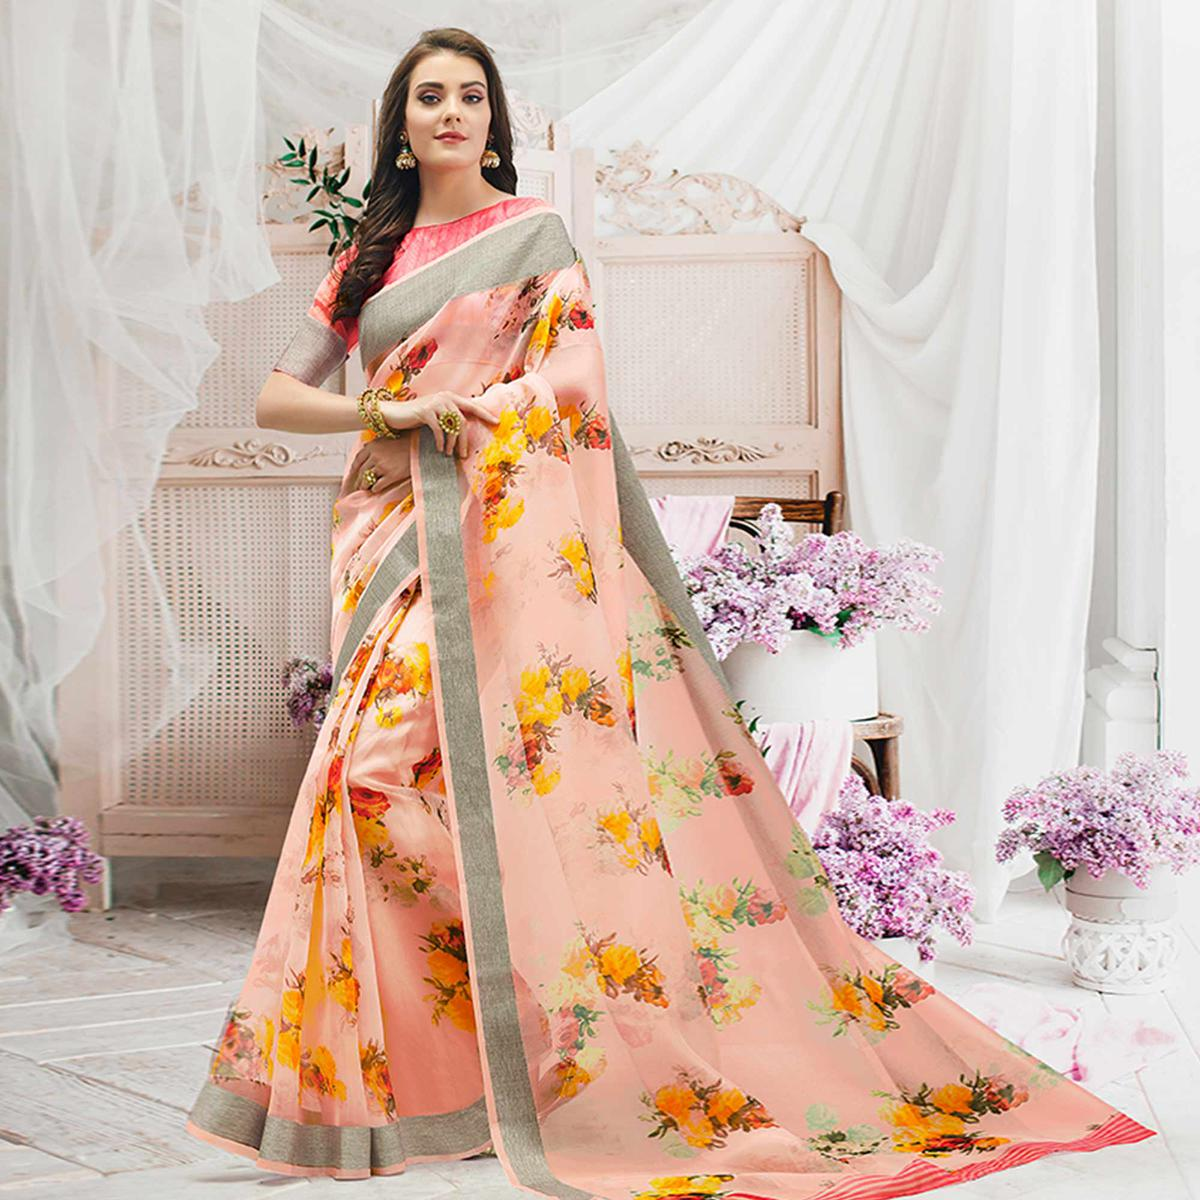 Stunning Peach Colored Casual Wear Floral Printed Organza Saree